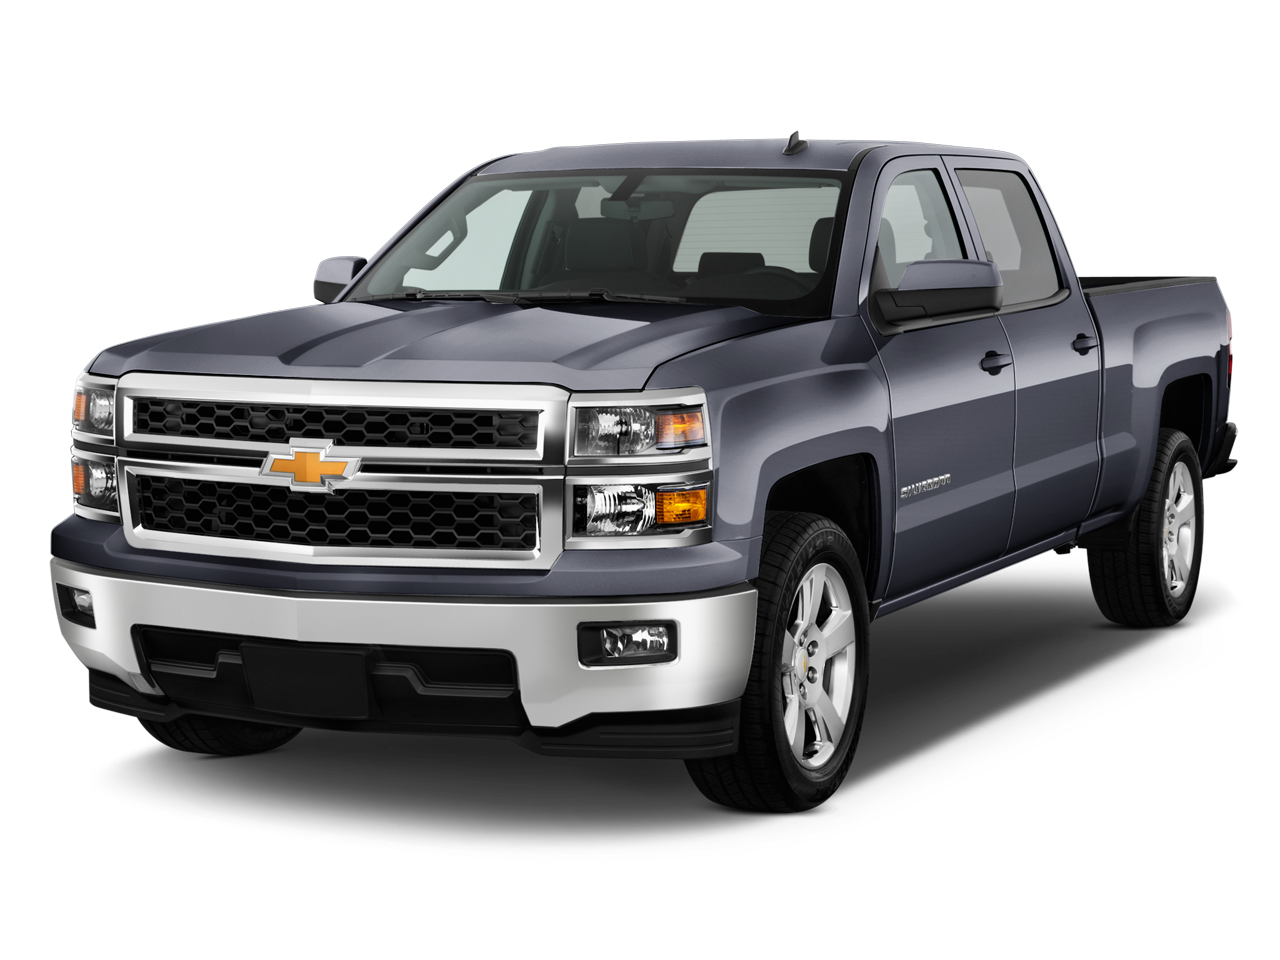 used one owner 2015 chevrolet silverado 1500 lt near broussard la courtesy automotive group. Black Bedroom Furniture Sets. Home Design Ideas